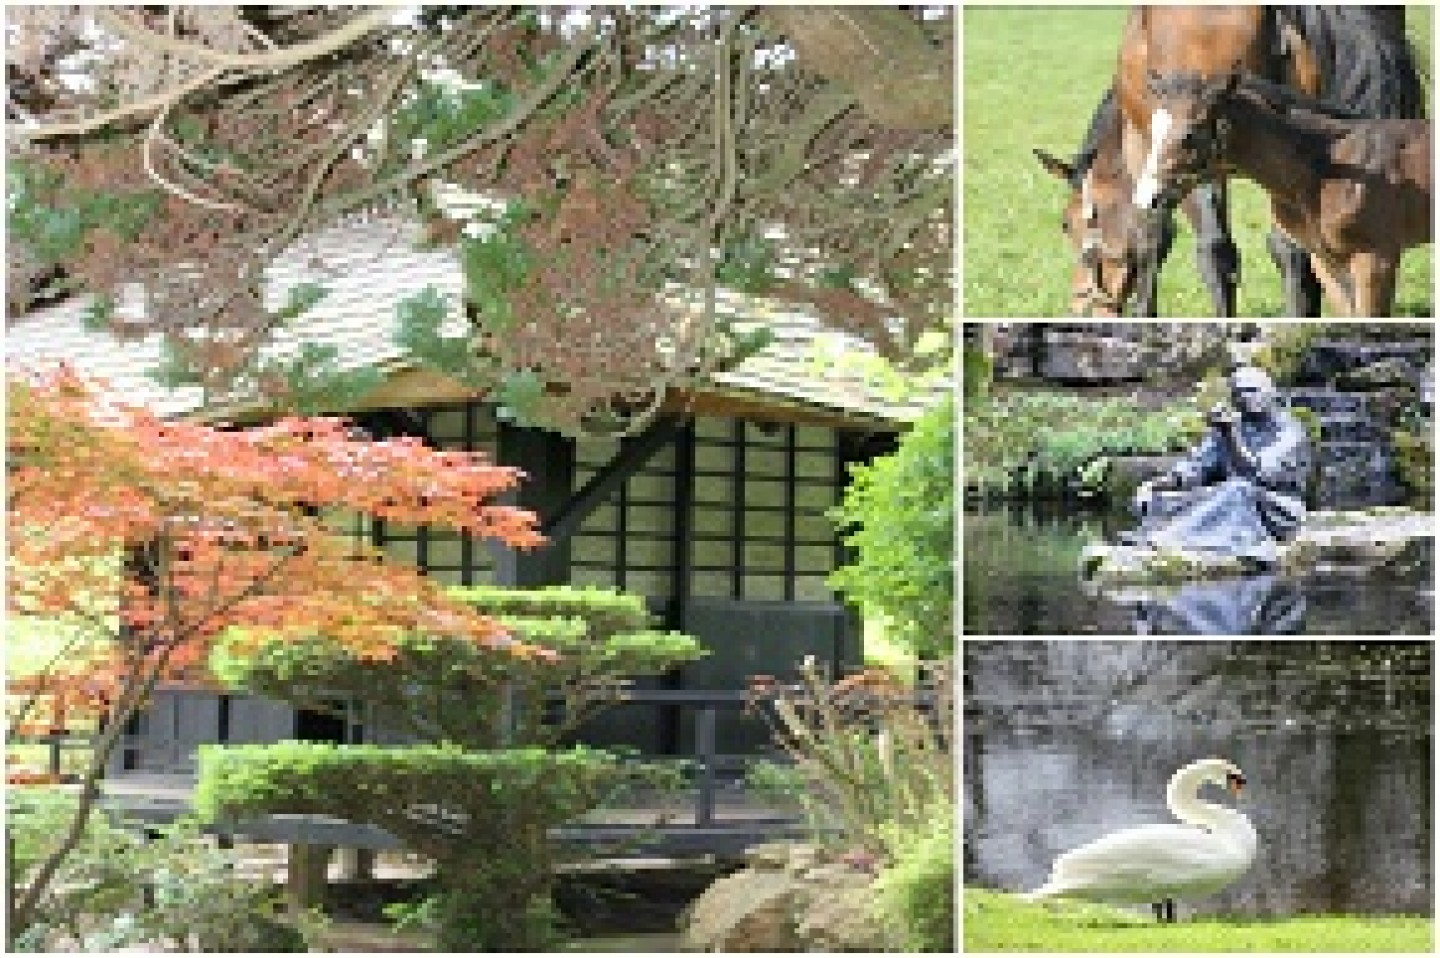 Irish National Stud, Japanese Gardens & St. Fiachras Garden